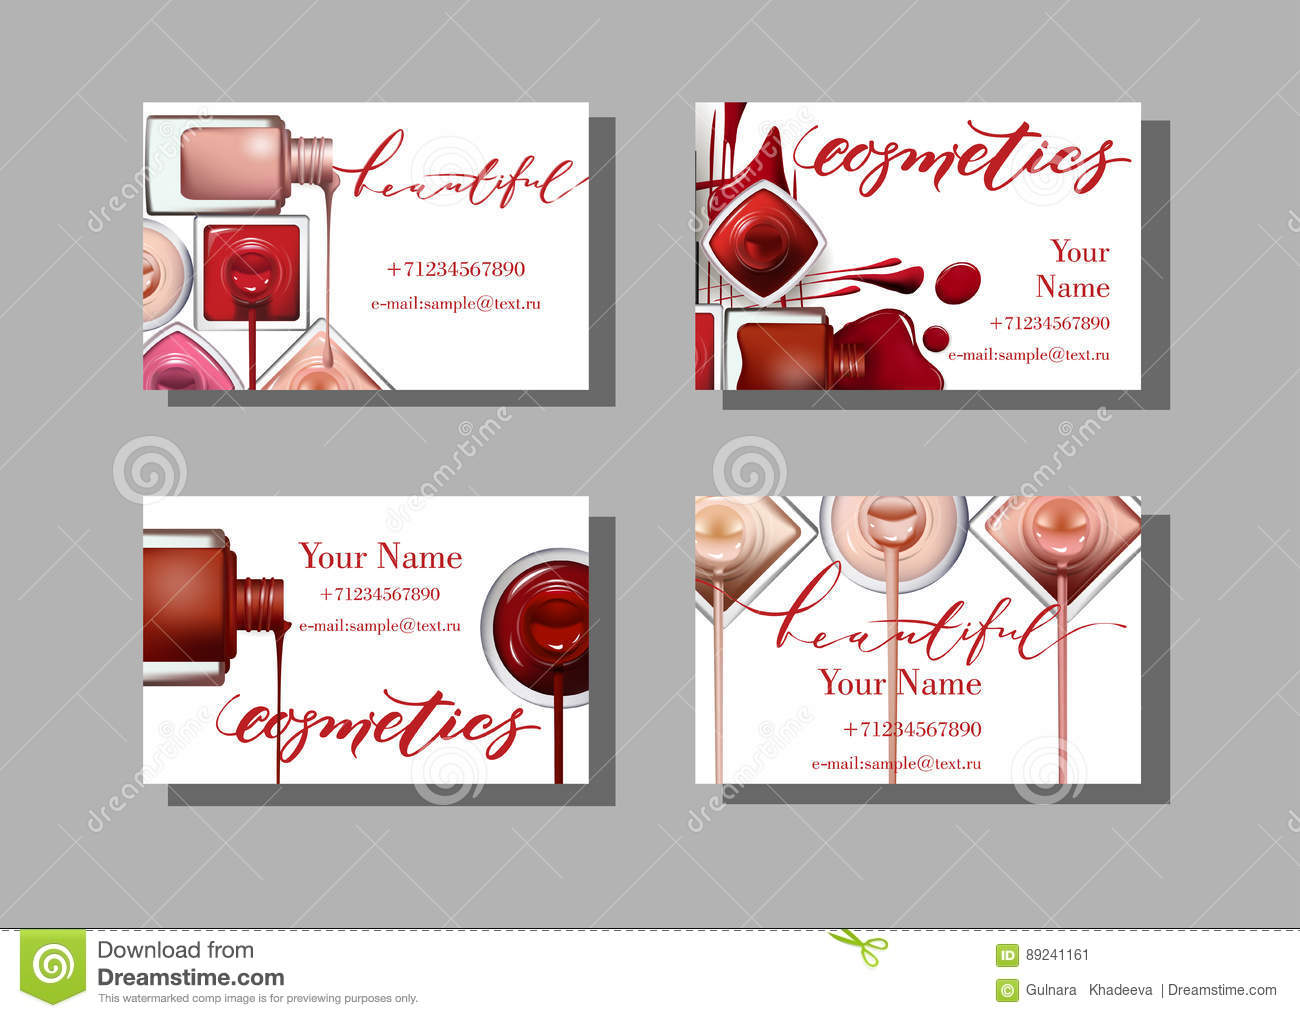 Makeup artist business card vector template with makeup items makeup artist business card vector template with makeup items pattern nail polish template vector alramifo Image collections